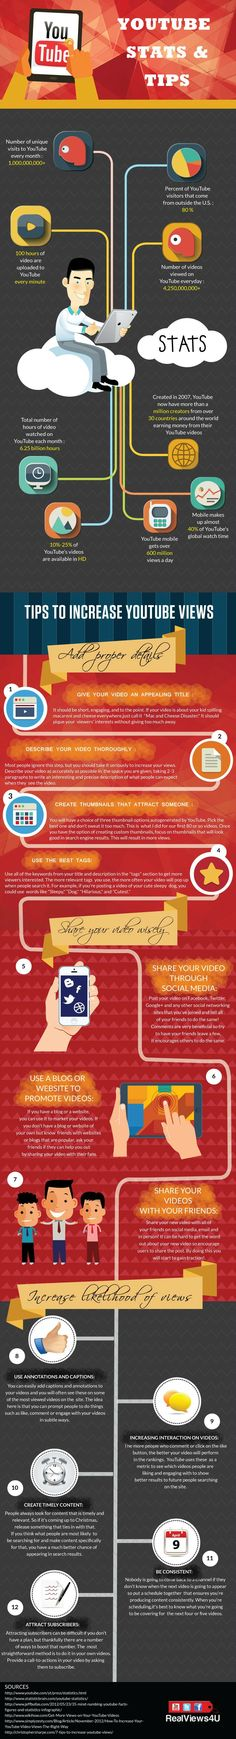 How to Maximize Your YouTube Views And Subscribers - Infographic